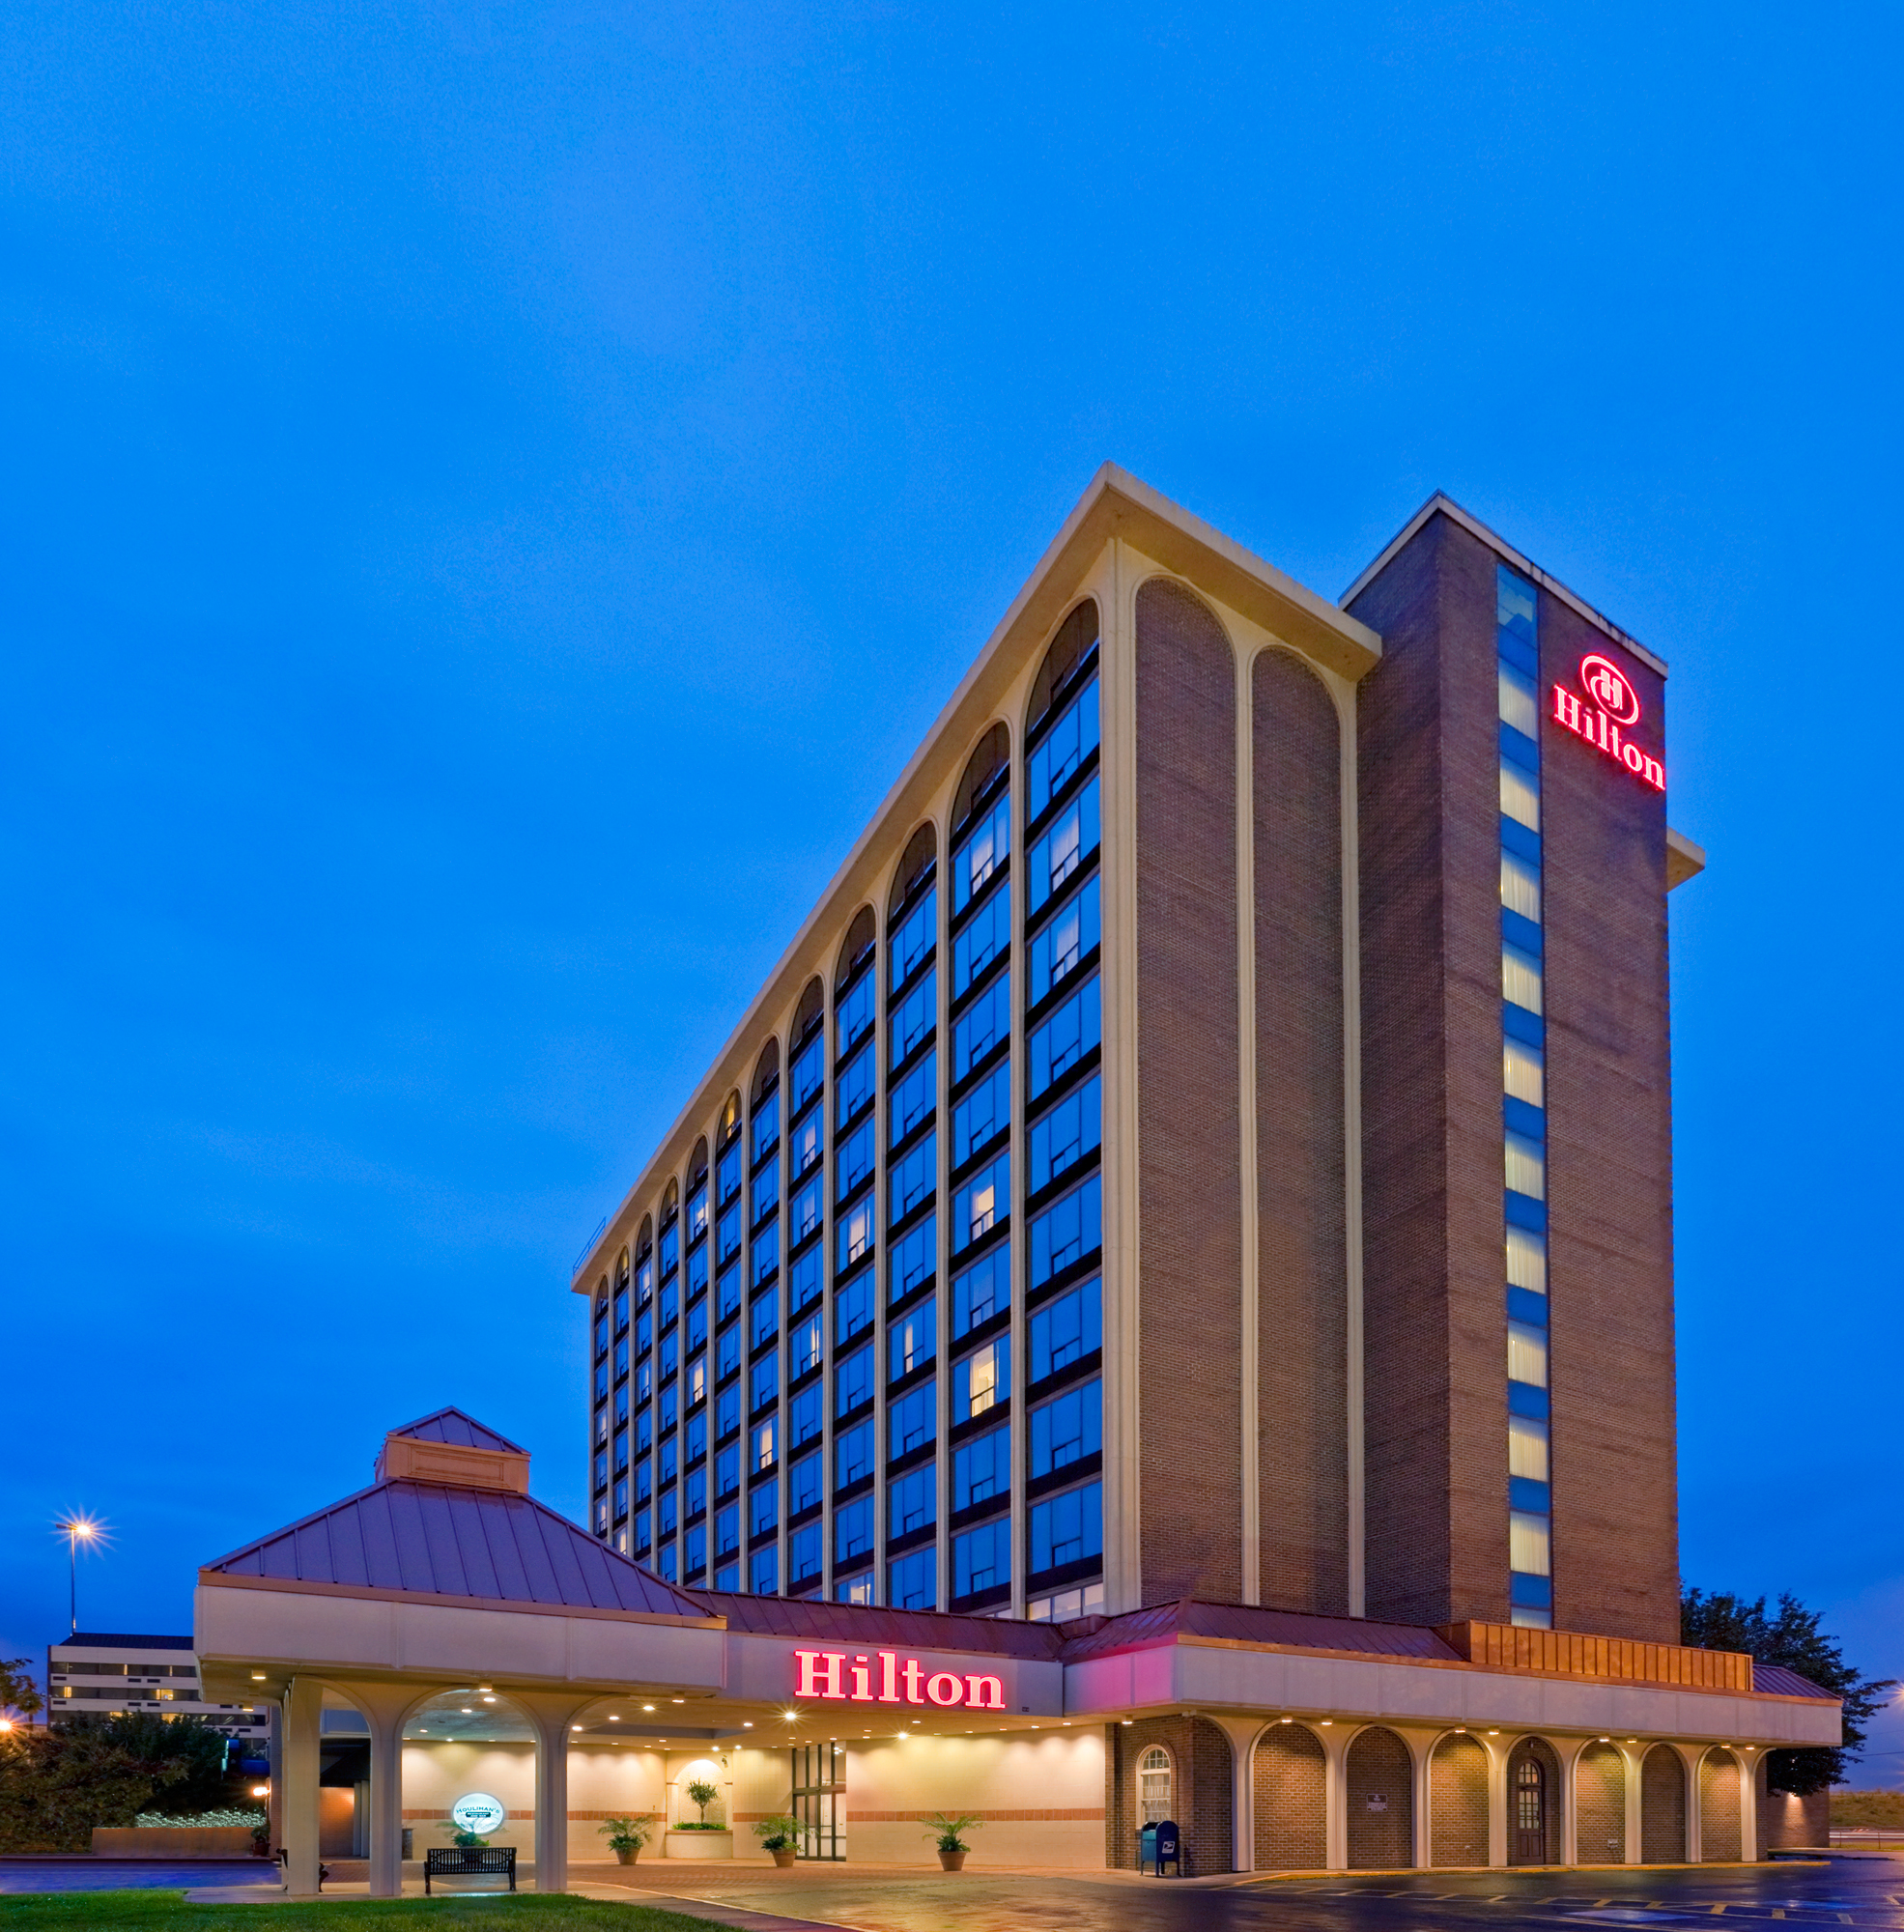 Hilton Hotel Reservations